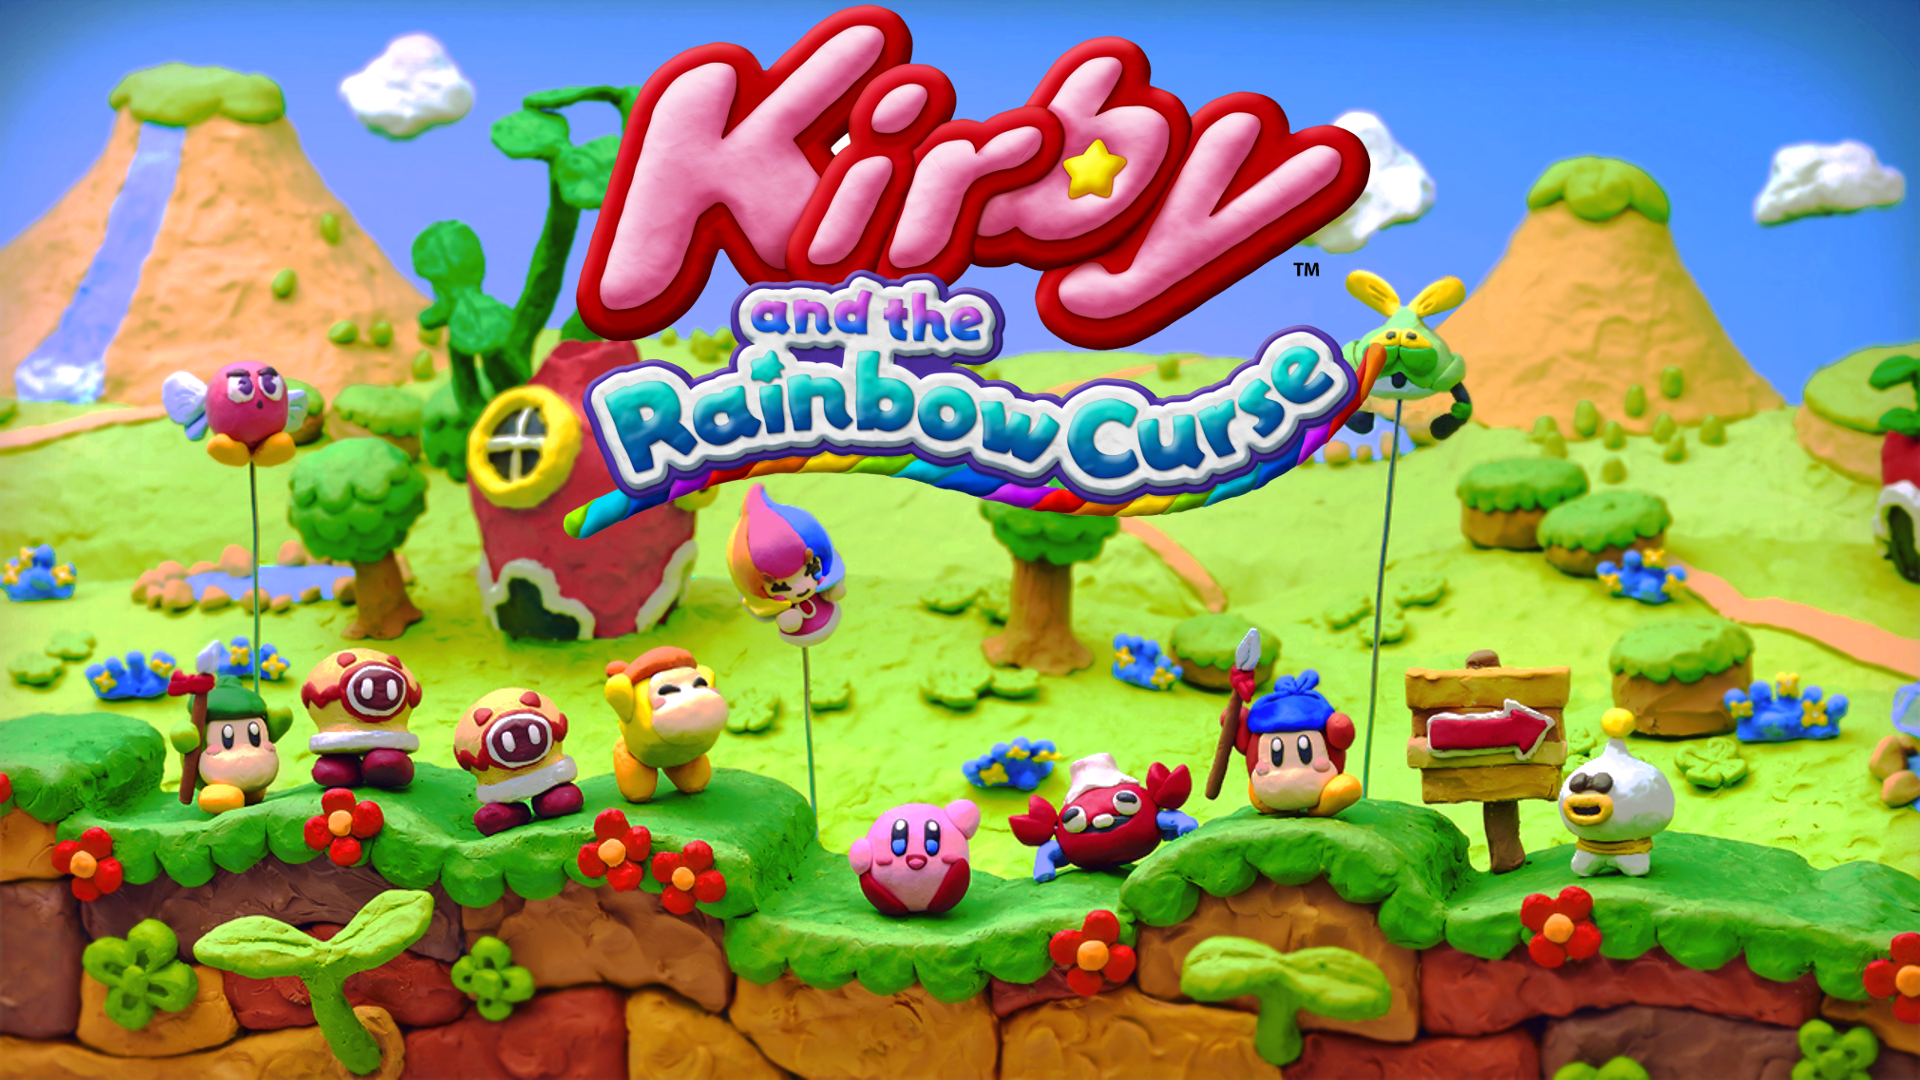 Kirby and the Rainbow Curse Logo